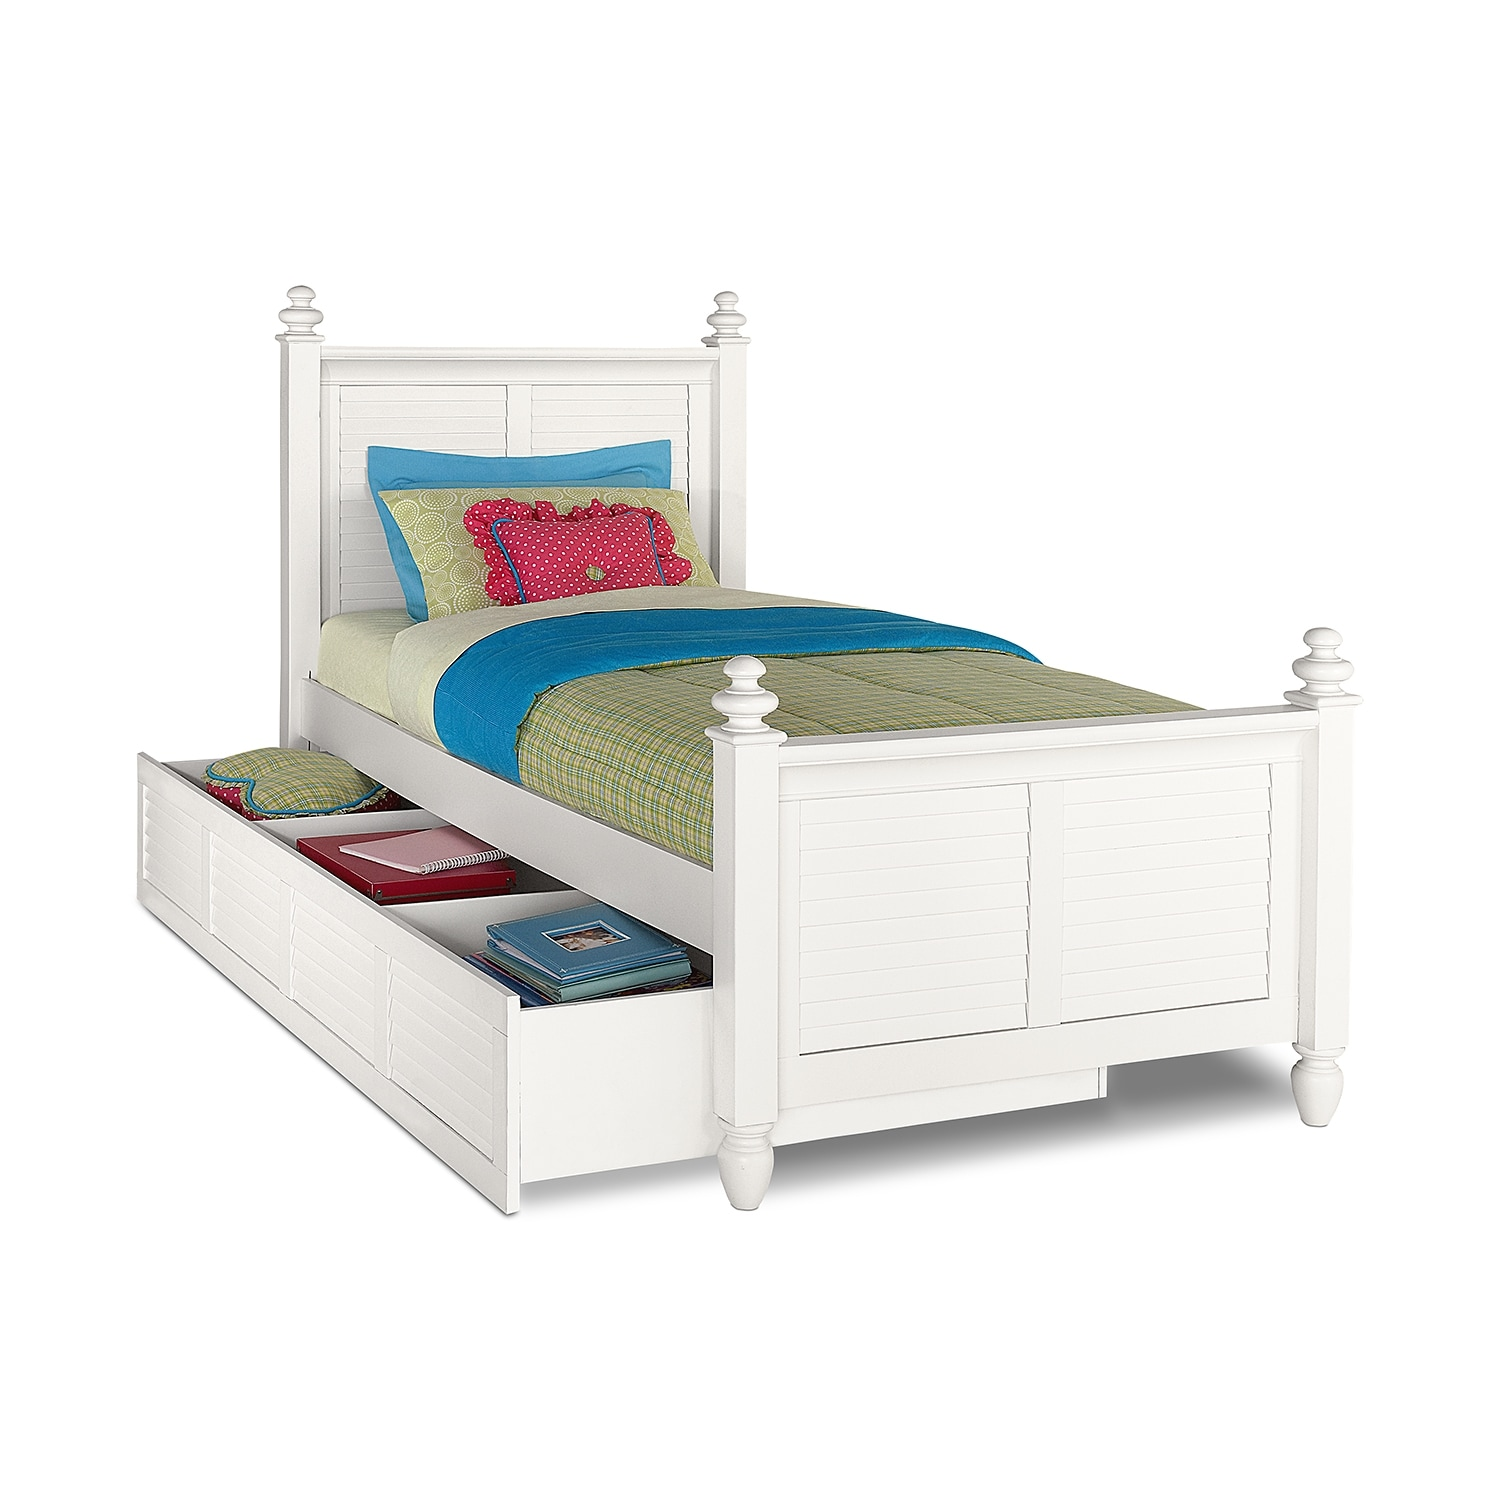 Seaside Twin Bed With Trundle